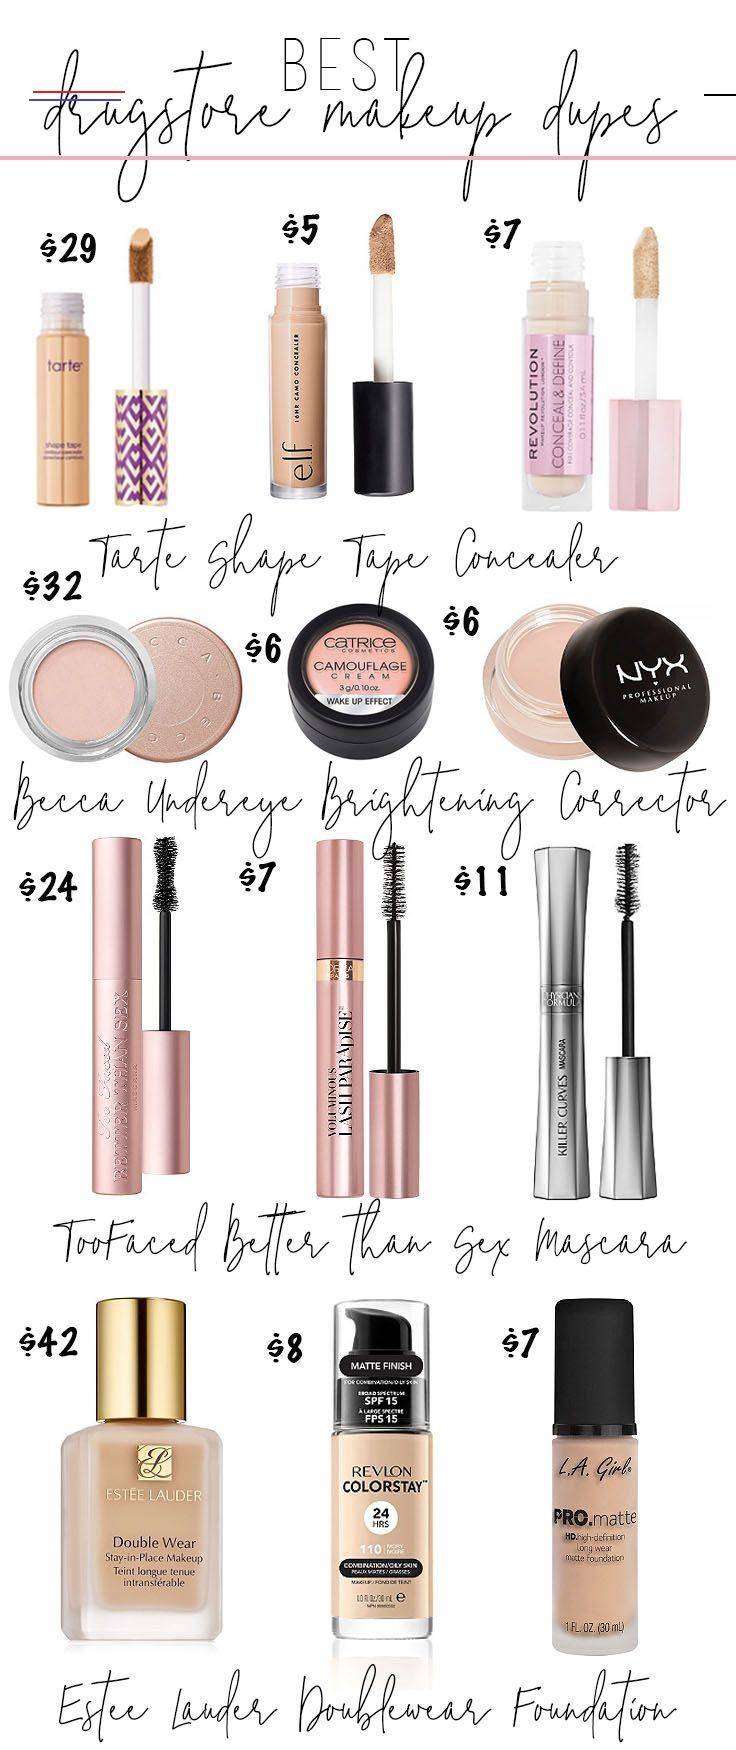 Best Makeup Dupes From The Drugstore Drugstore Makeup Dupes Stephanie Pernas Best Makeup Dupes From The Drugstore In 2020 Dupe Makeup Drogisterij Make Dupes Dupes